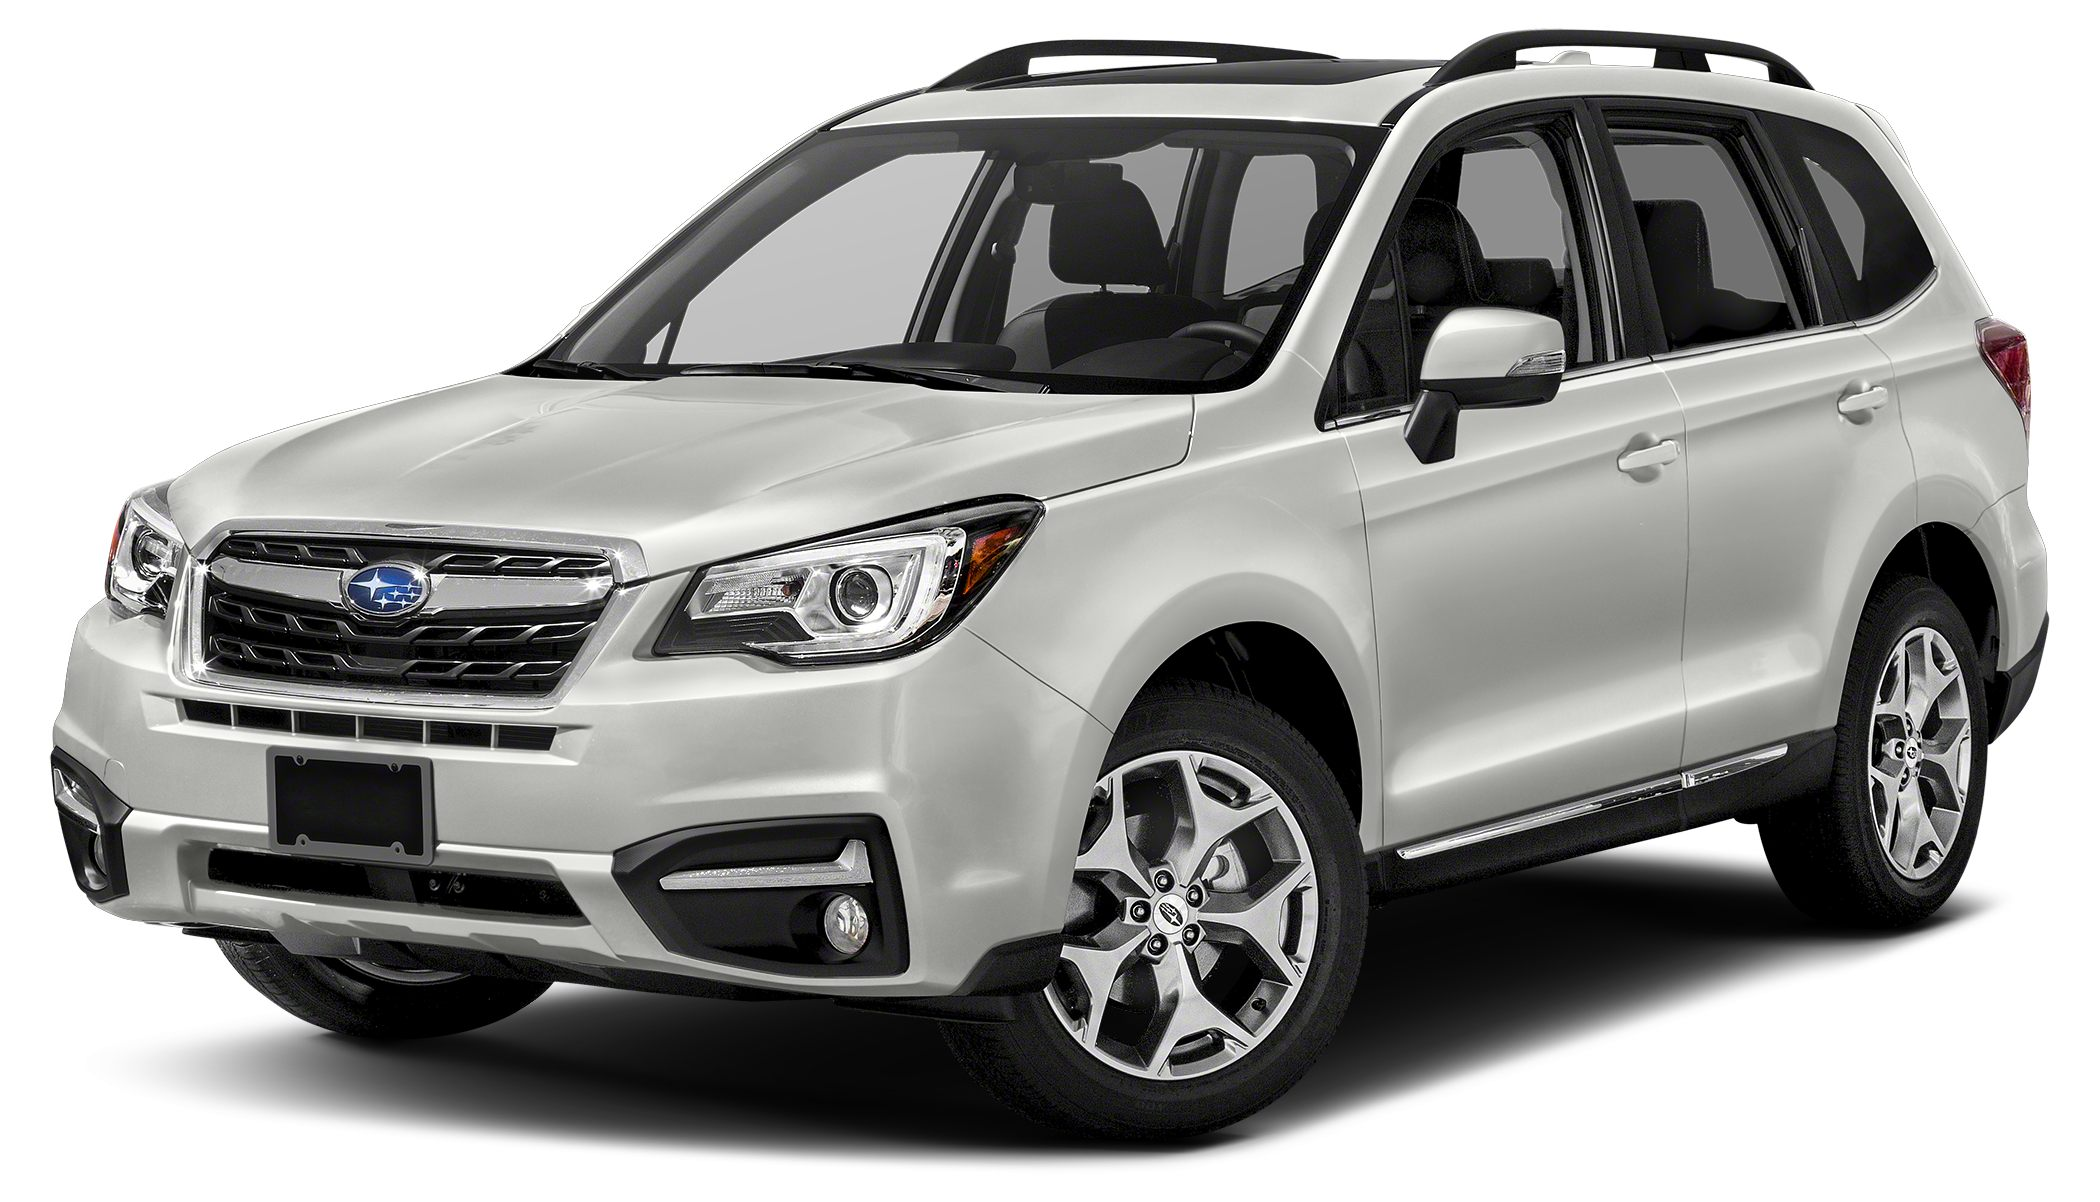 2017 Subaru Forester 25i Touring Miles 5Color Crystal White Pearl Stock 17U017 VIN JF2SJATC